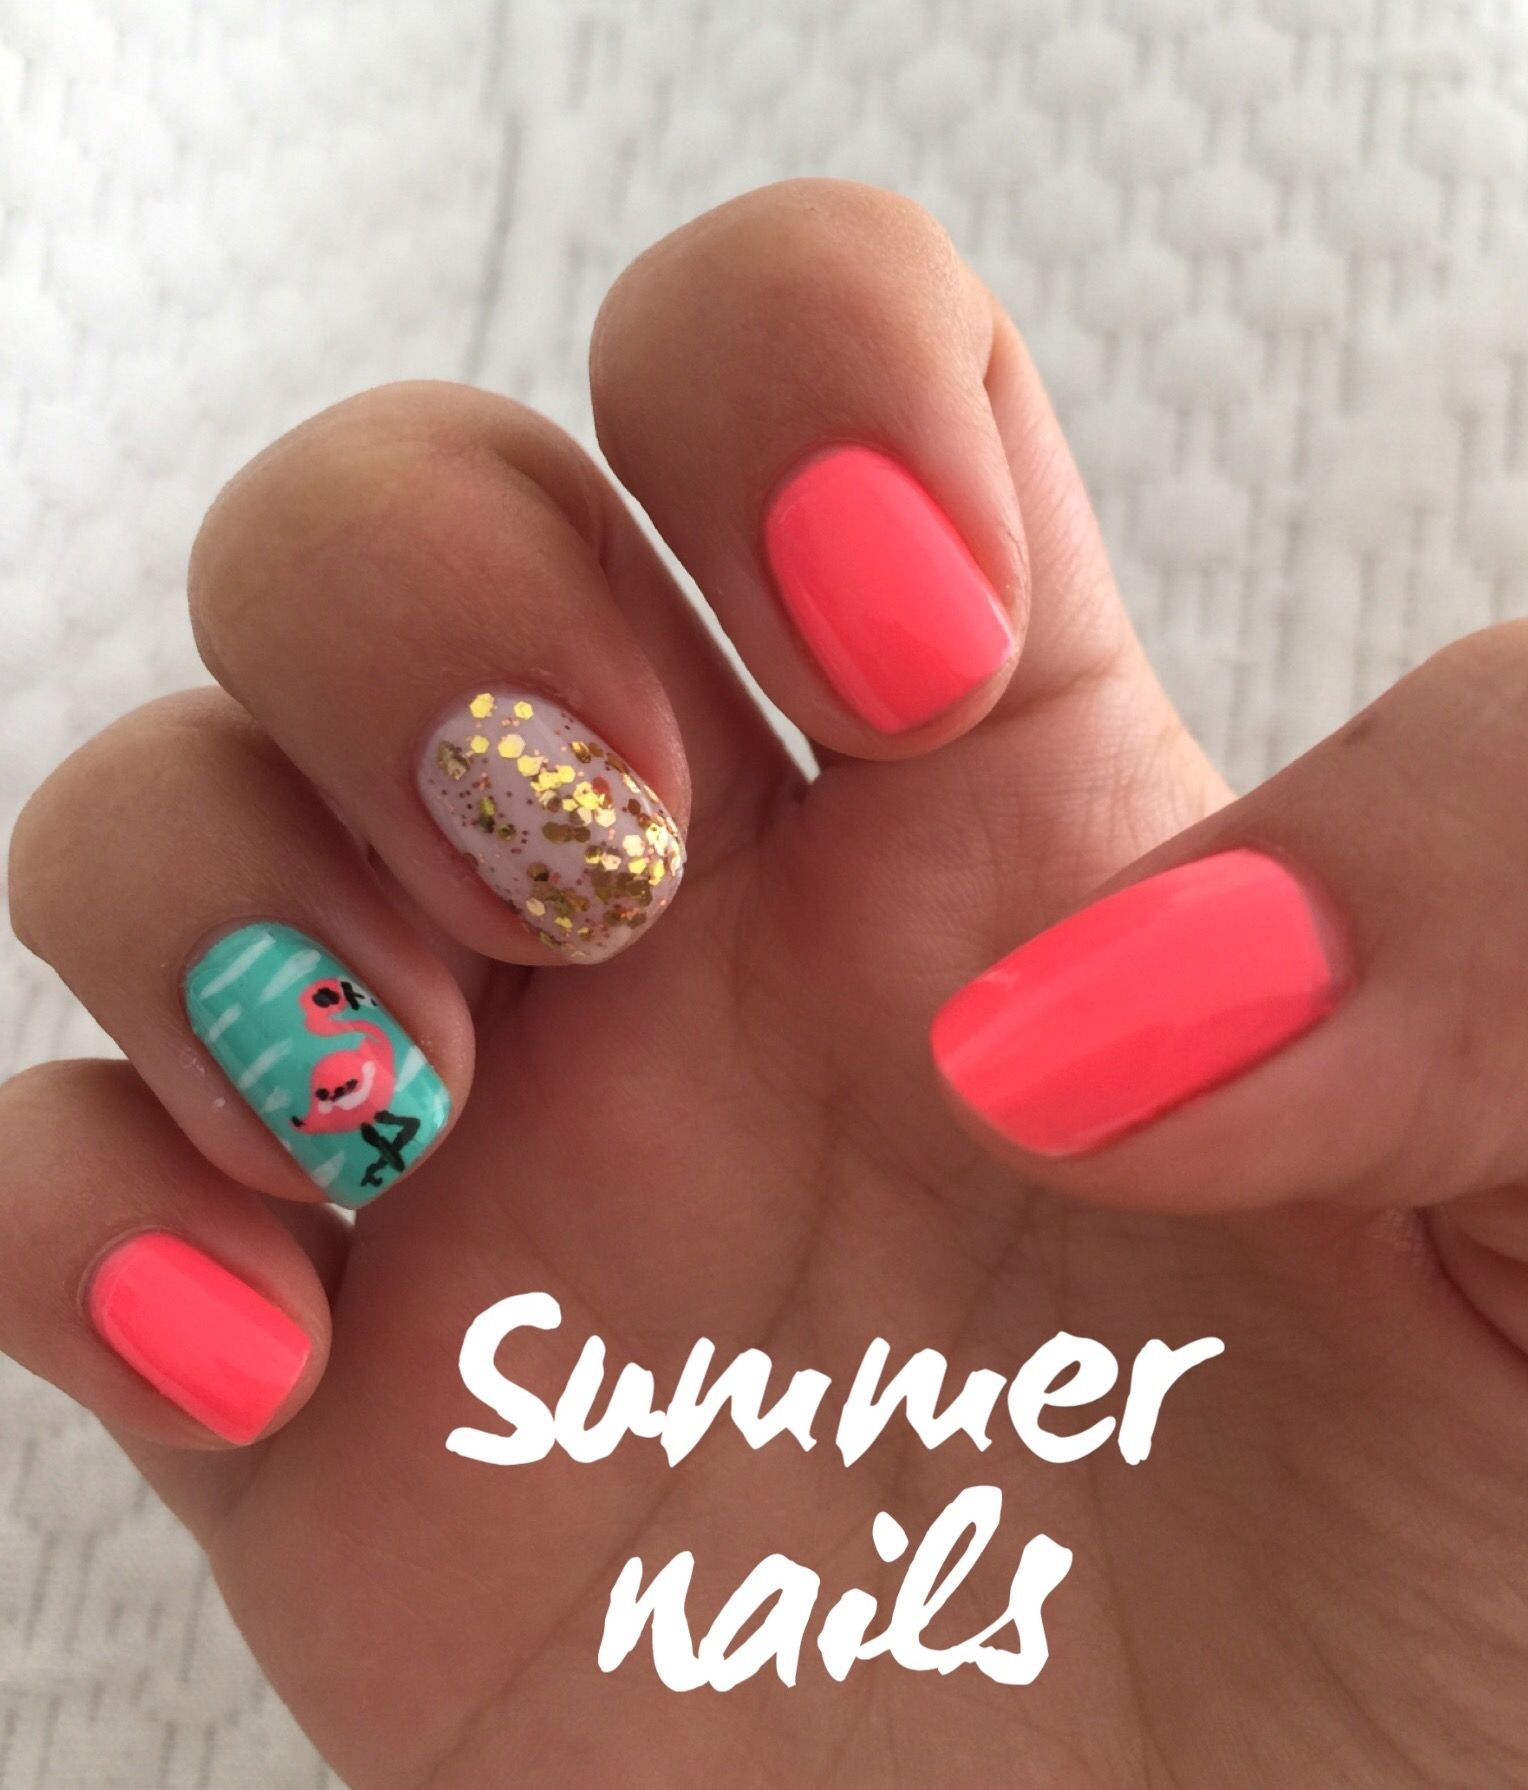 Adorable Nail Art: Summer Nails Coral And Teal, Golden Glitter And A Cute